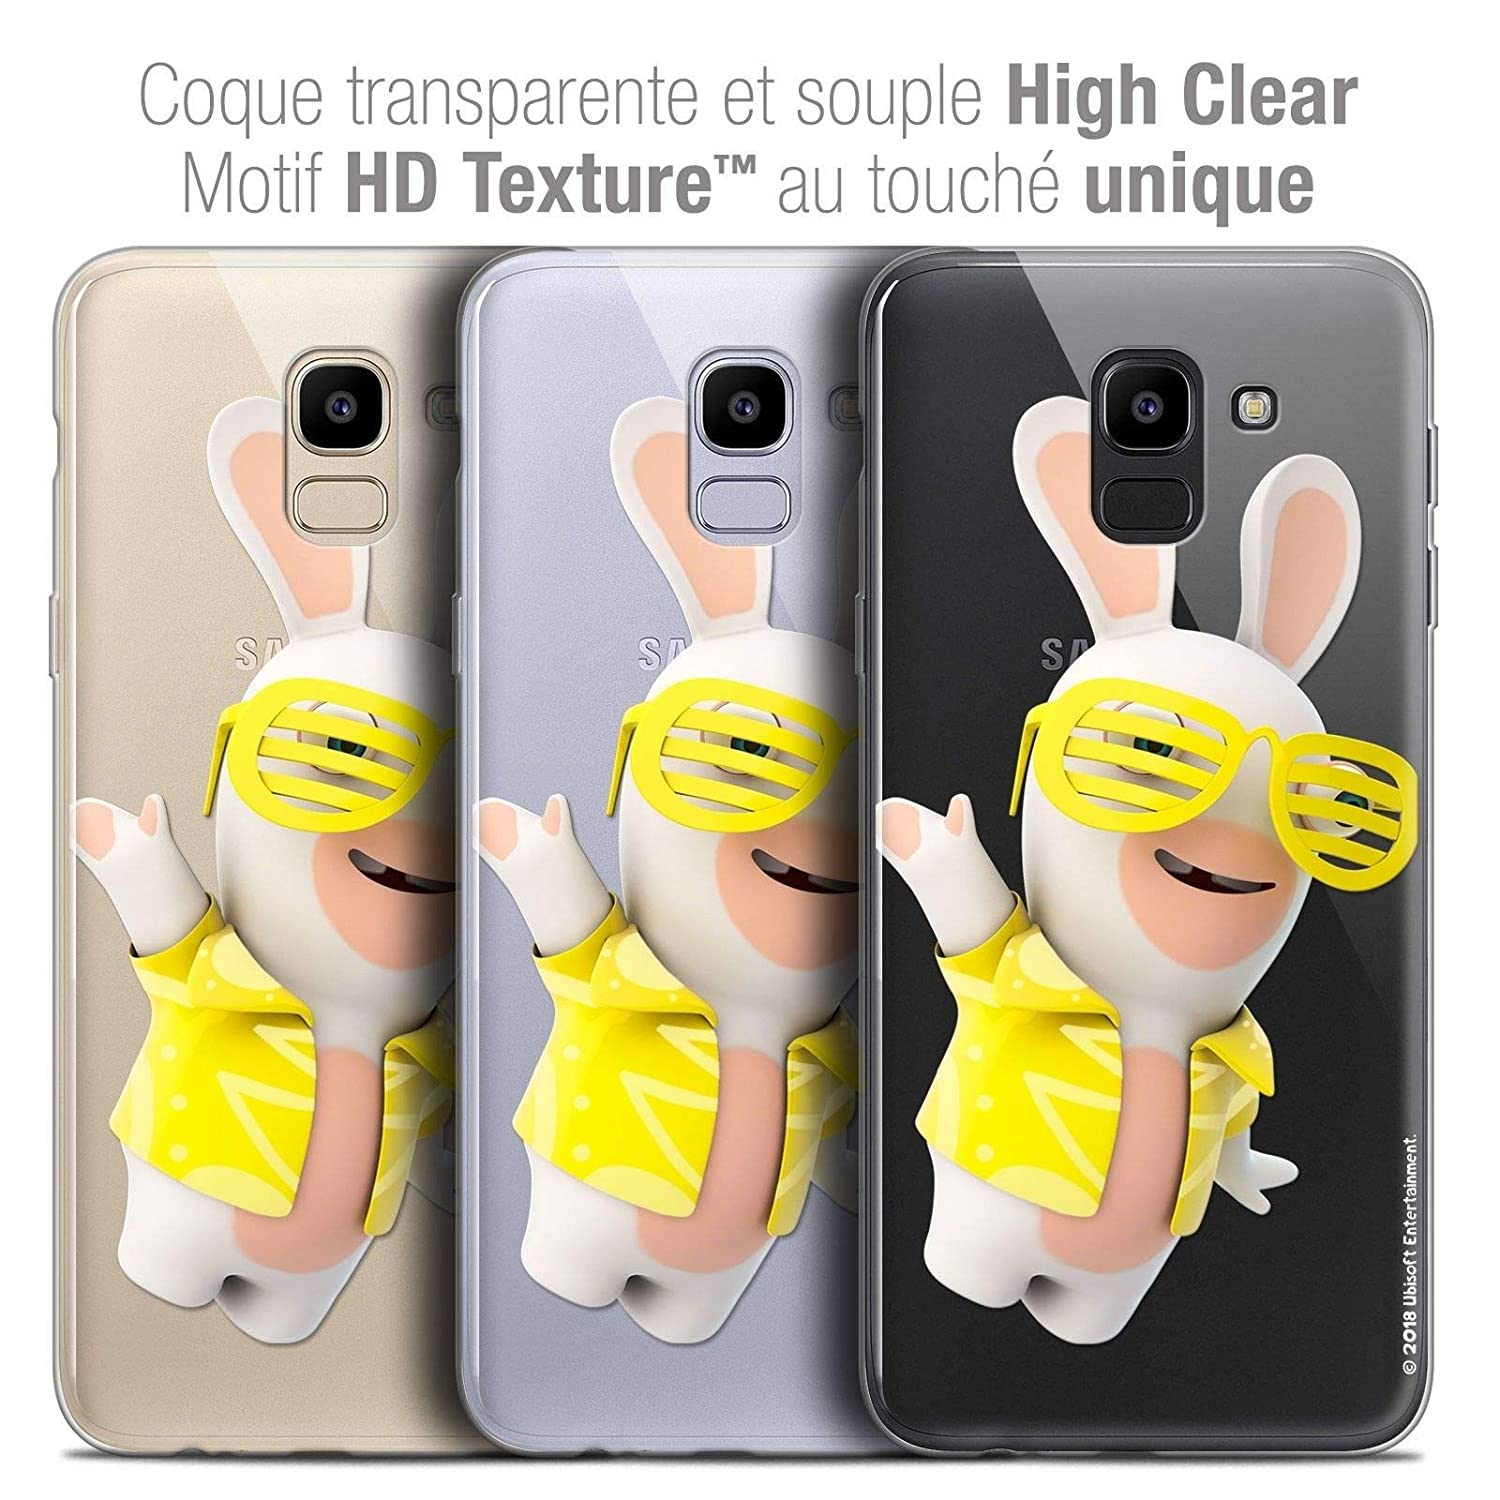 Caseink Coque pour Samsung Galaxy J6 2018 J600 (5.6) The Lapins Crétins®   Collection Officielle  Design Sun Glassss  Antichoc arrière  Amazon.fr   High-tech 4ee168de8964